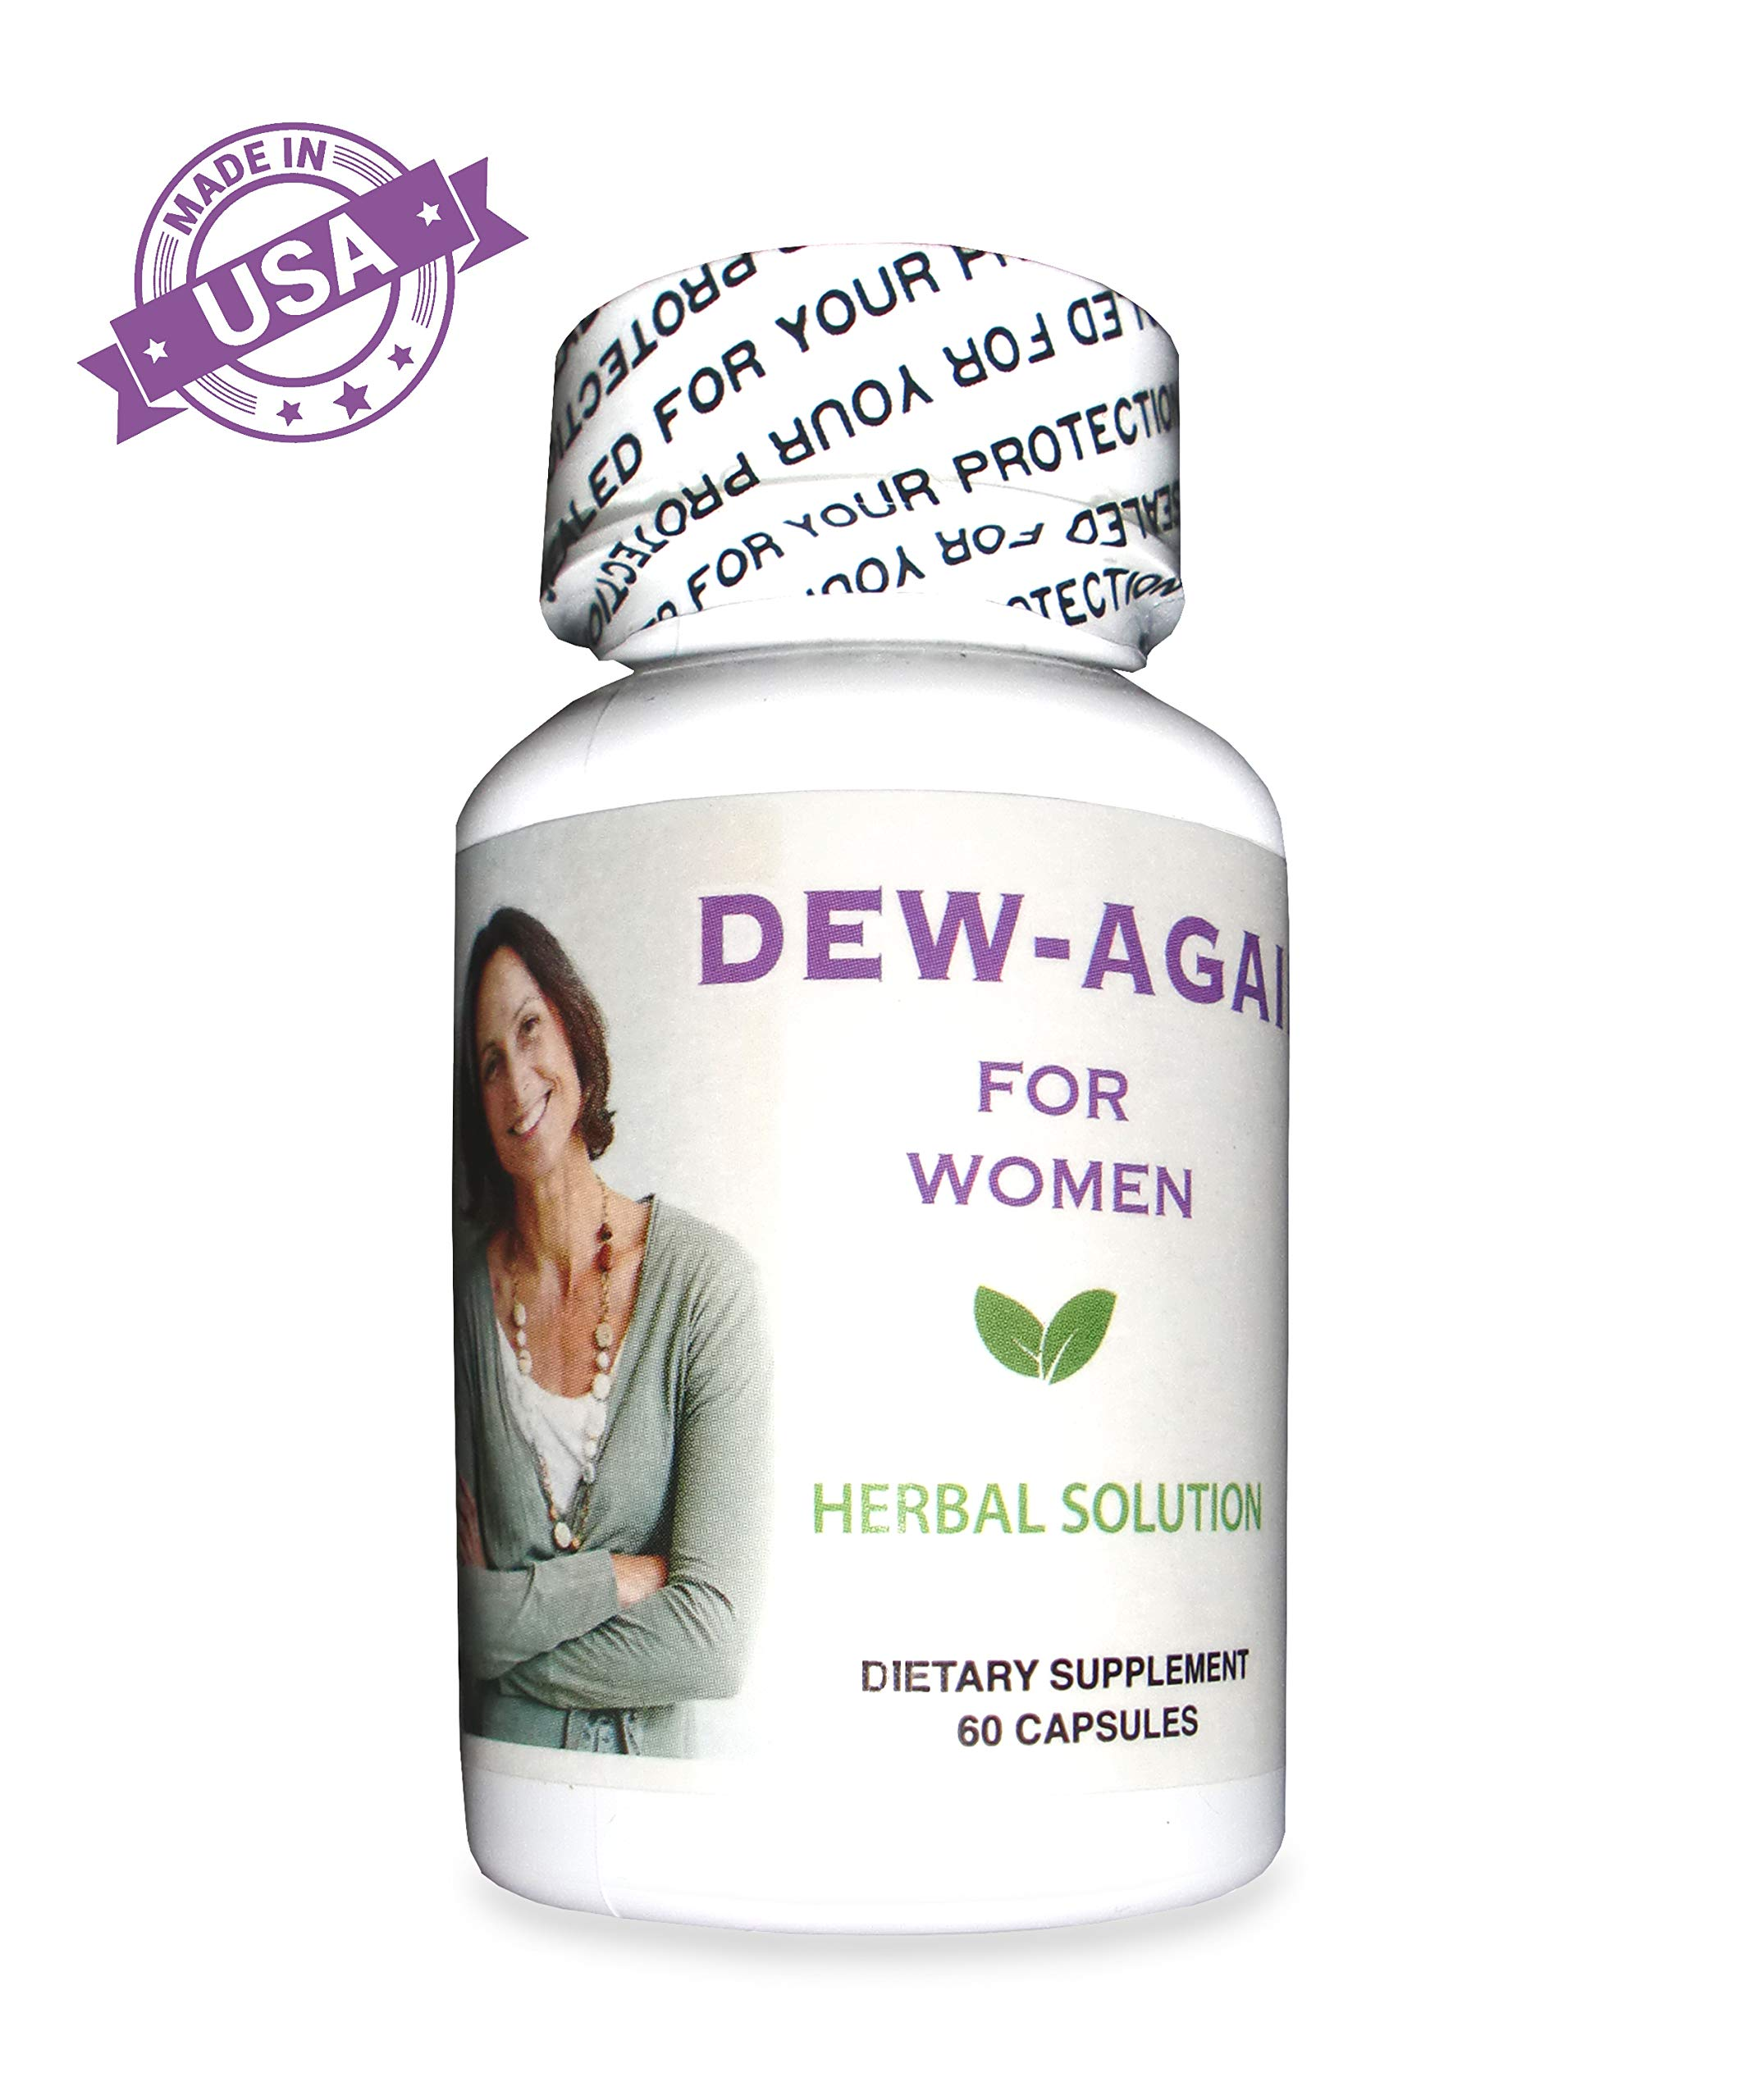 Dew-Again Vaginal Dryness Supplement - 100% Natural Herbal Blend, Moisturizes and Increases Vaginal Lubrication, High Potency, No Hormones, No Side Effects, 60 Capsules by Dew-Again